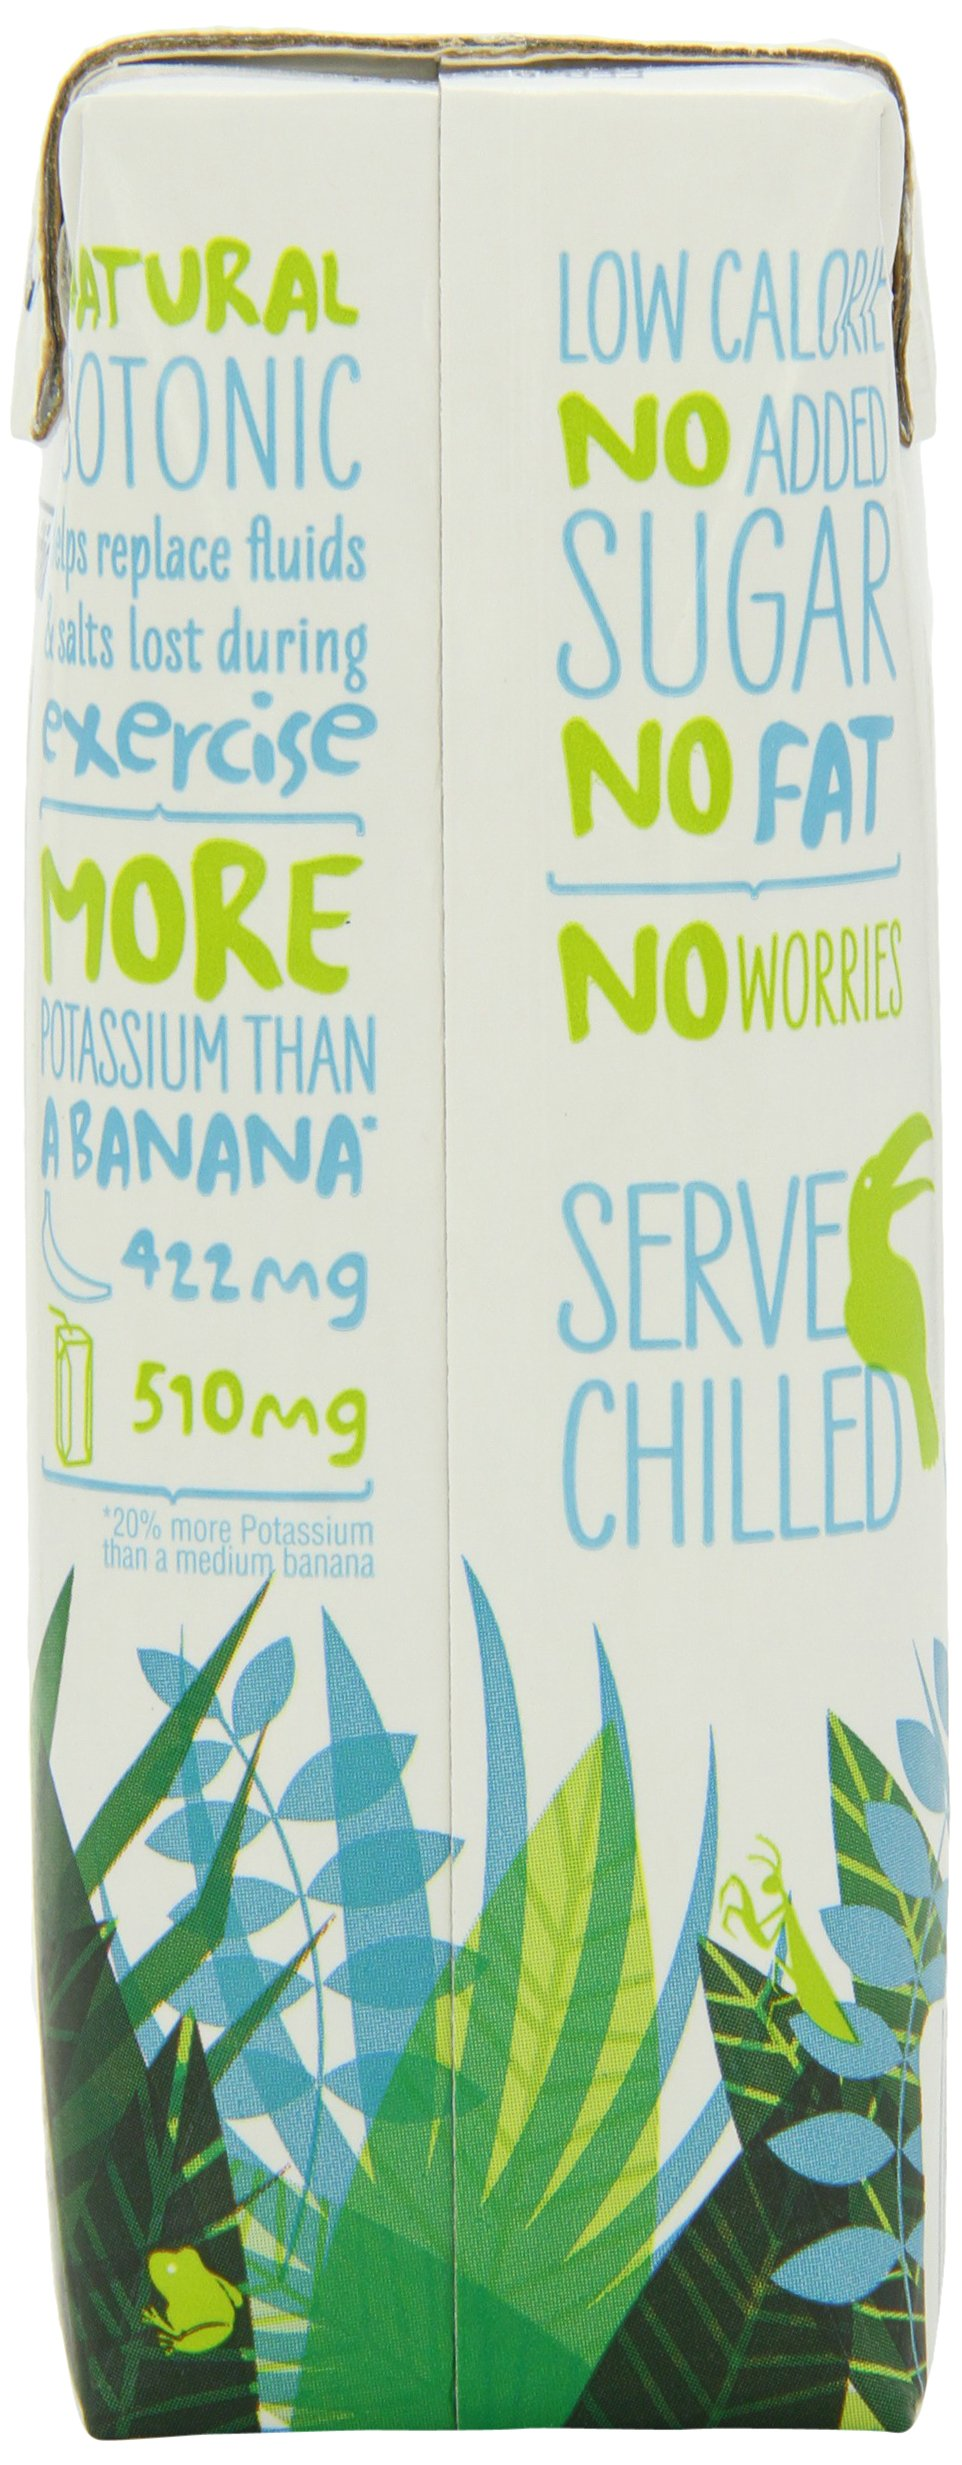 Harvest Bay – All Natural No Added Sugar Coconut Water - 8.45 Ounce (Pack of 12) by Harvest Bay (Image #4)